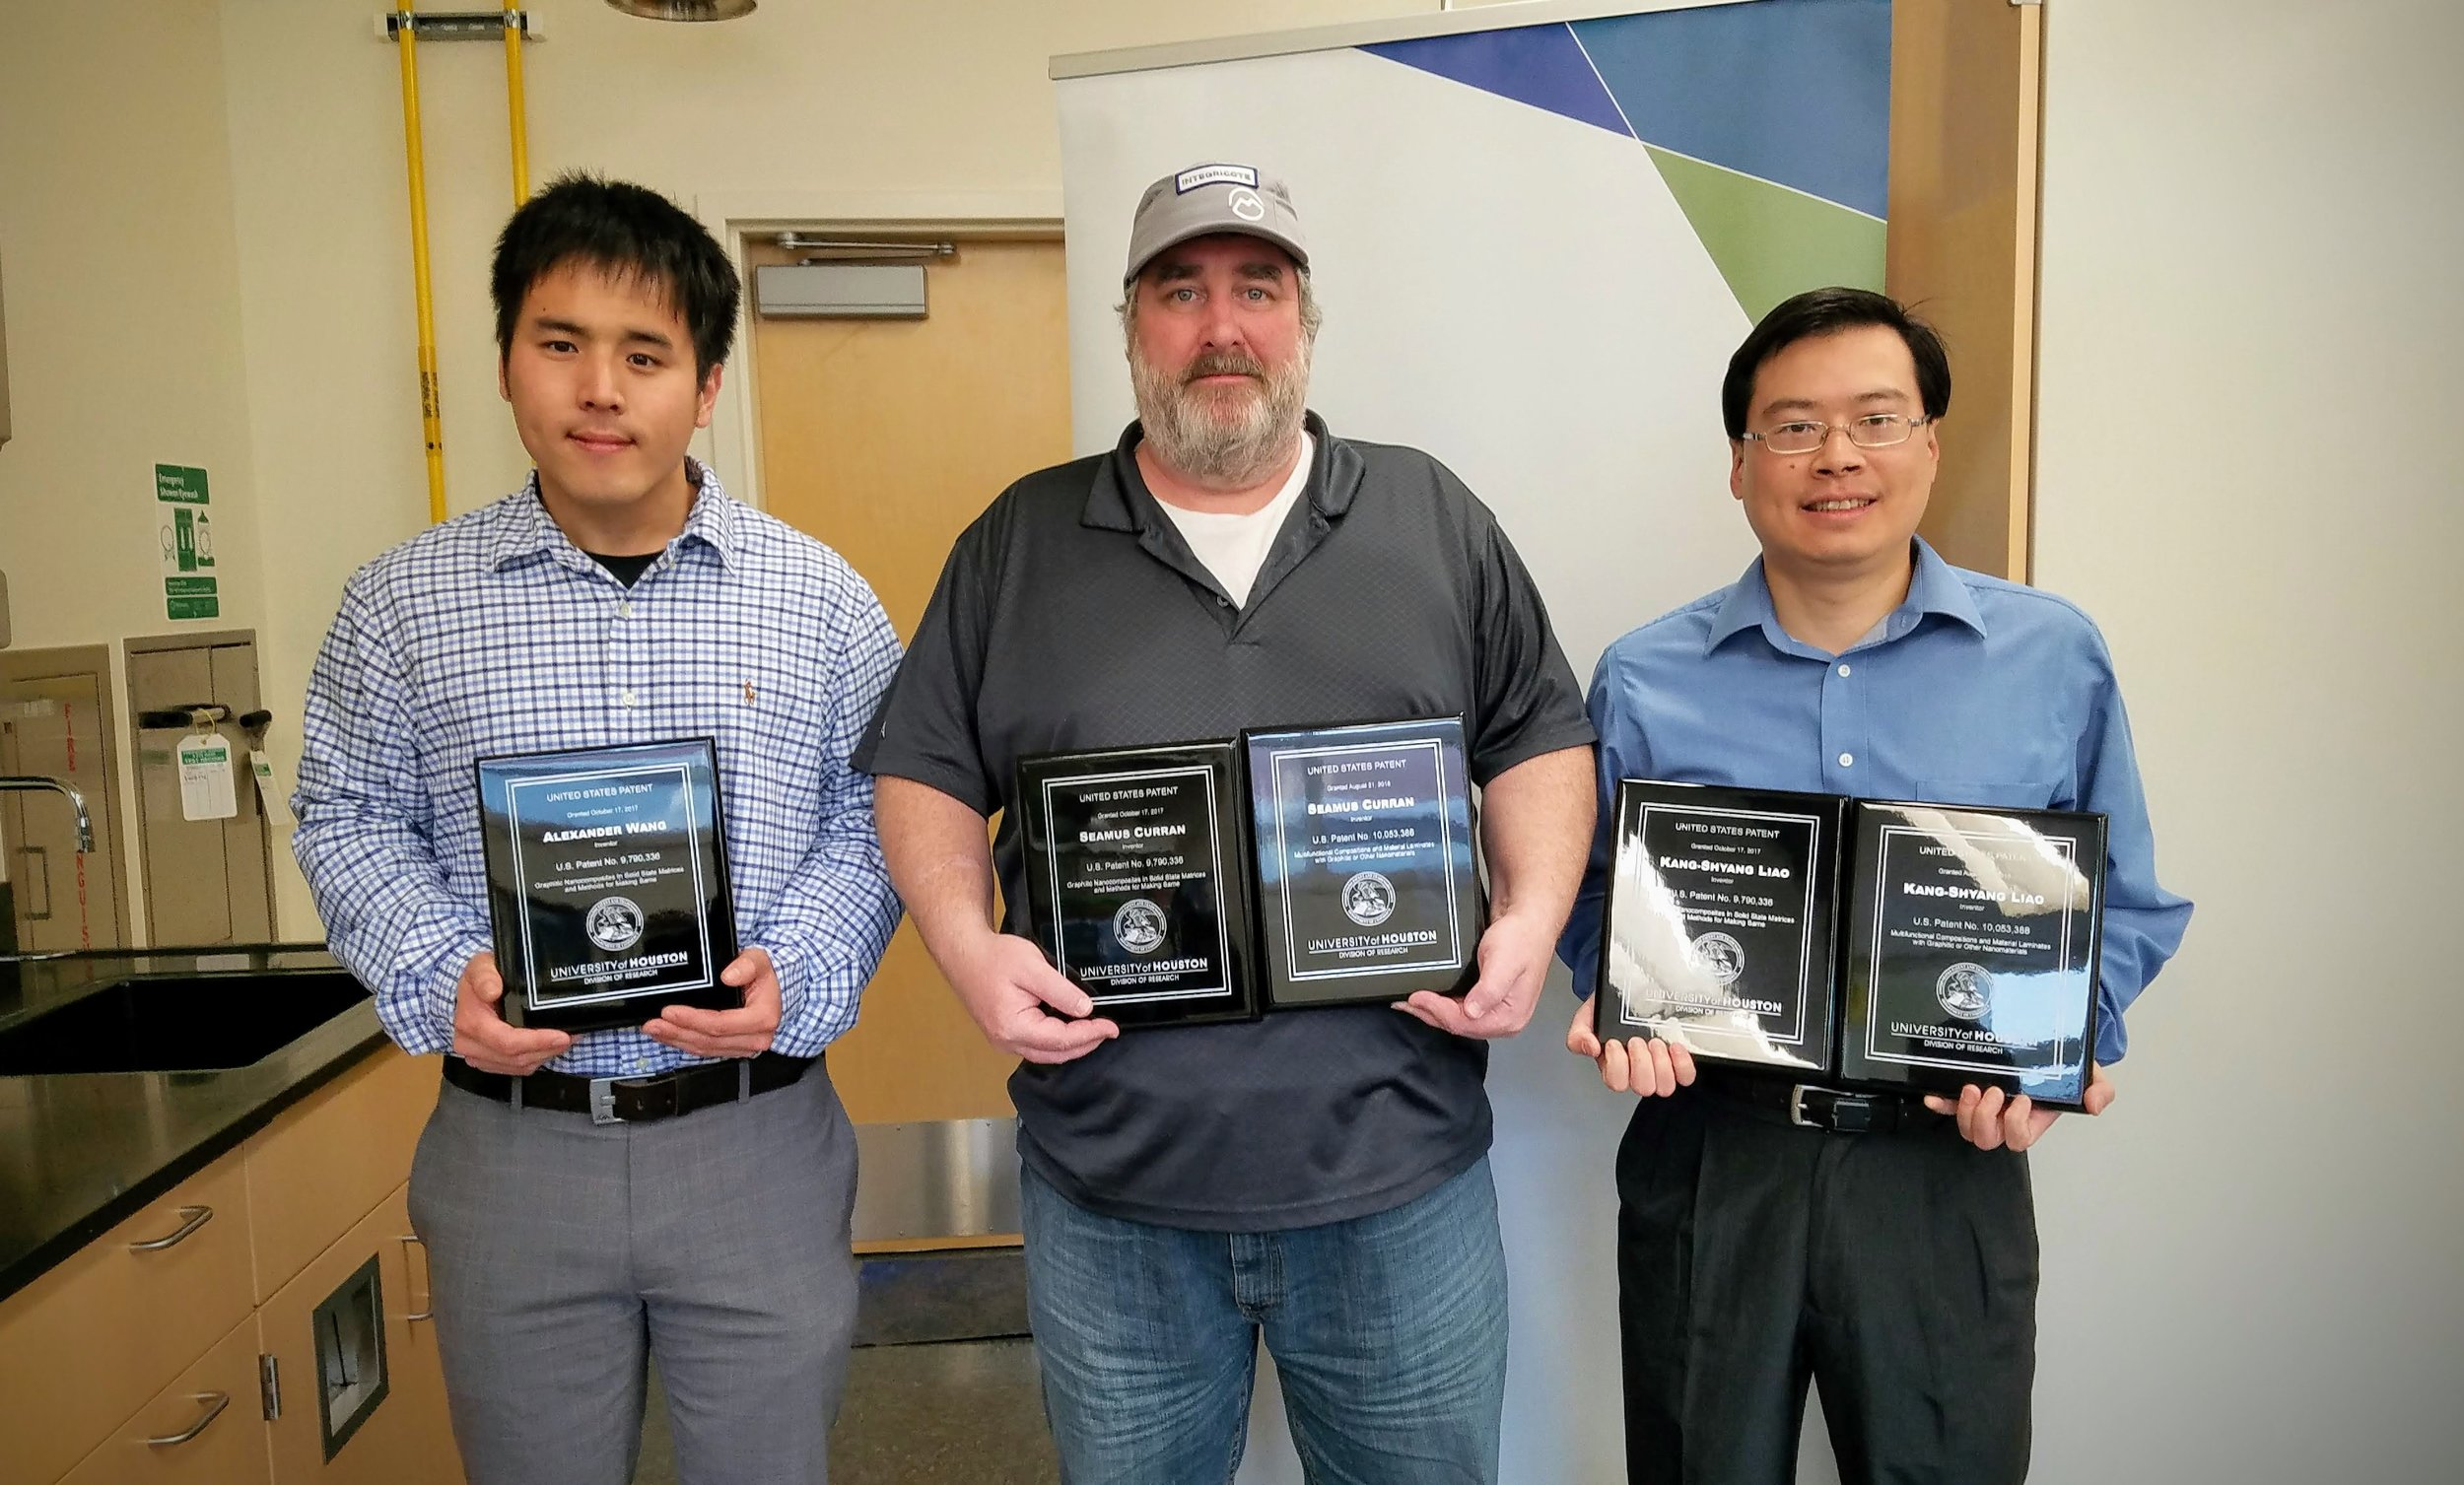 Starting from left COO (Mr. Alex Wang), CEO (Prof. Shay Curran), and CTO (Dr. Shawn Liao) holding their respective patent awards.